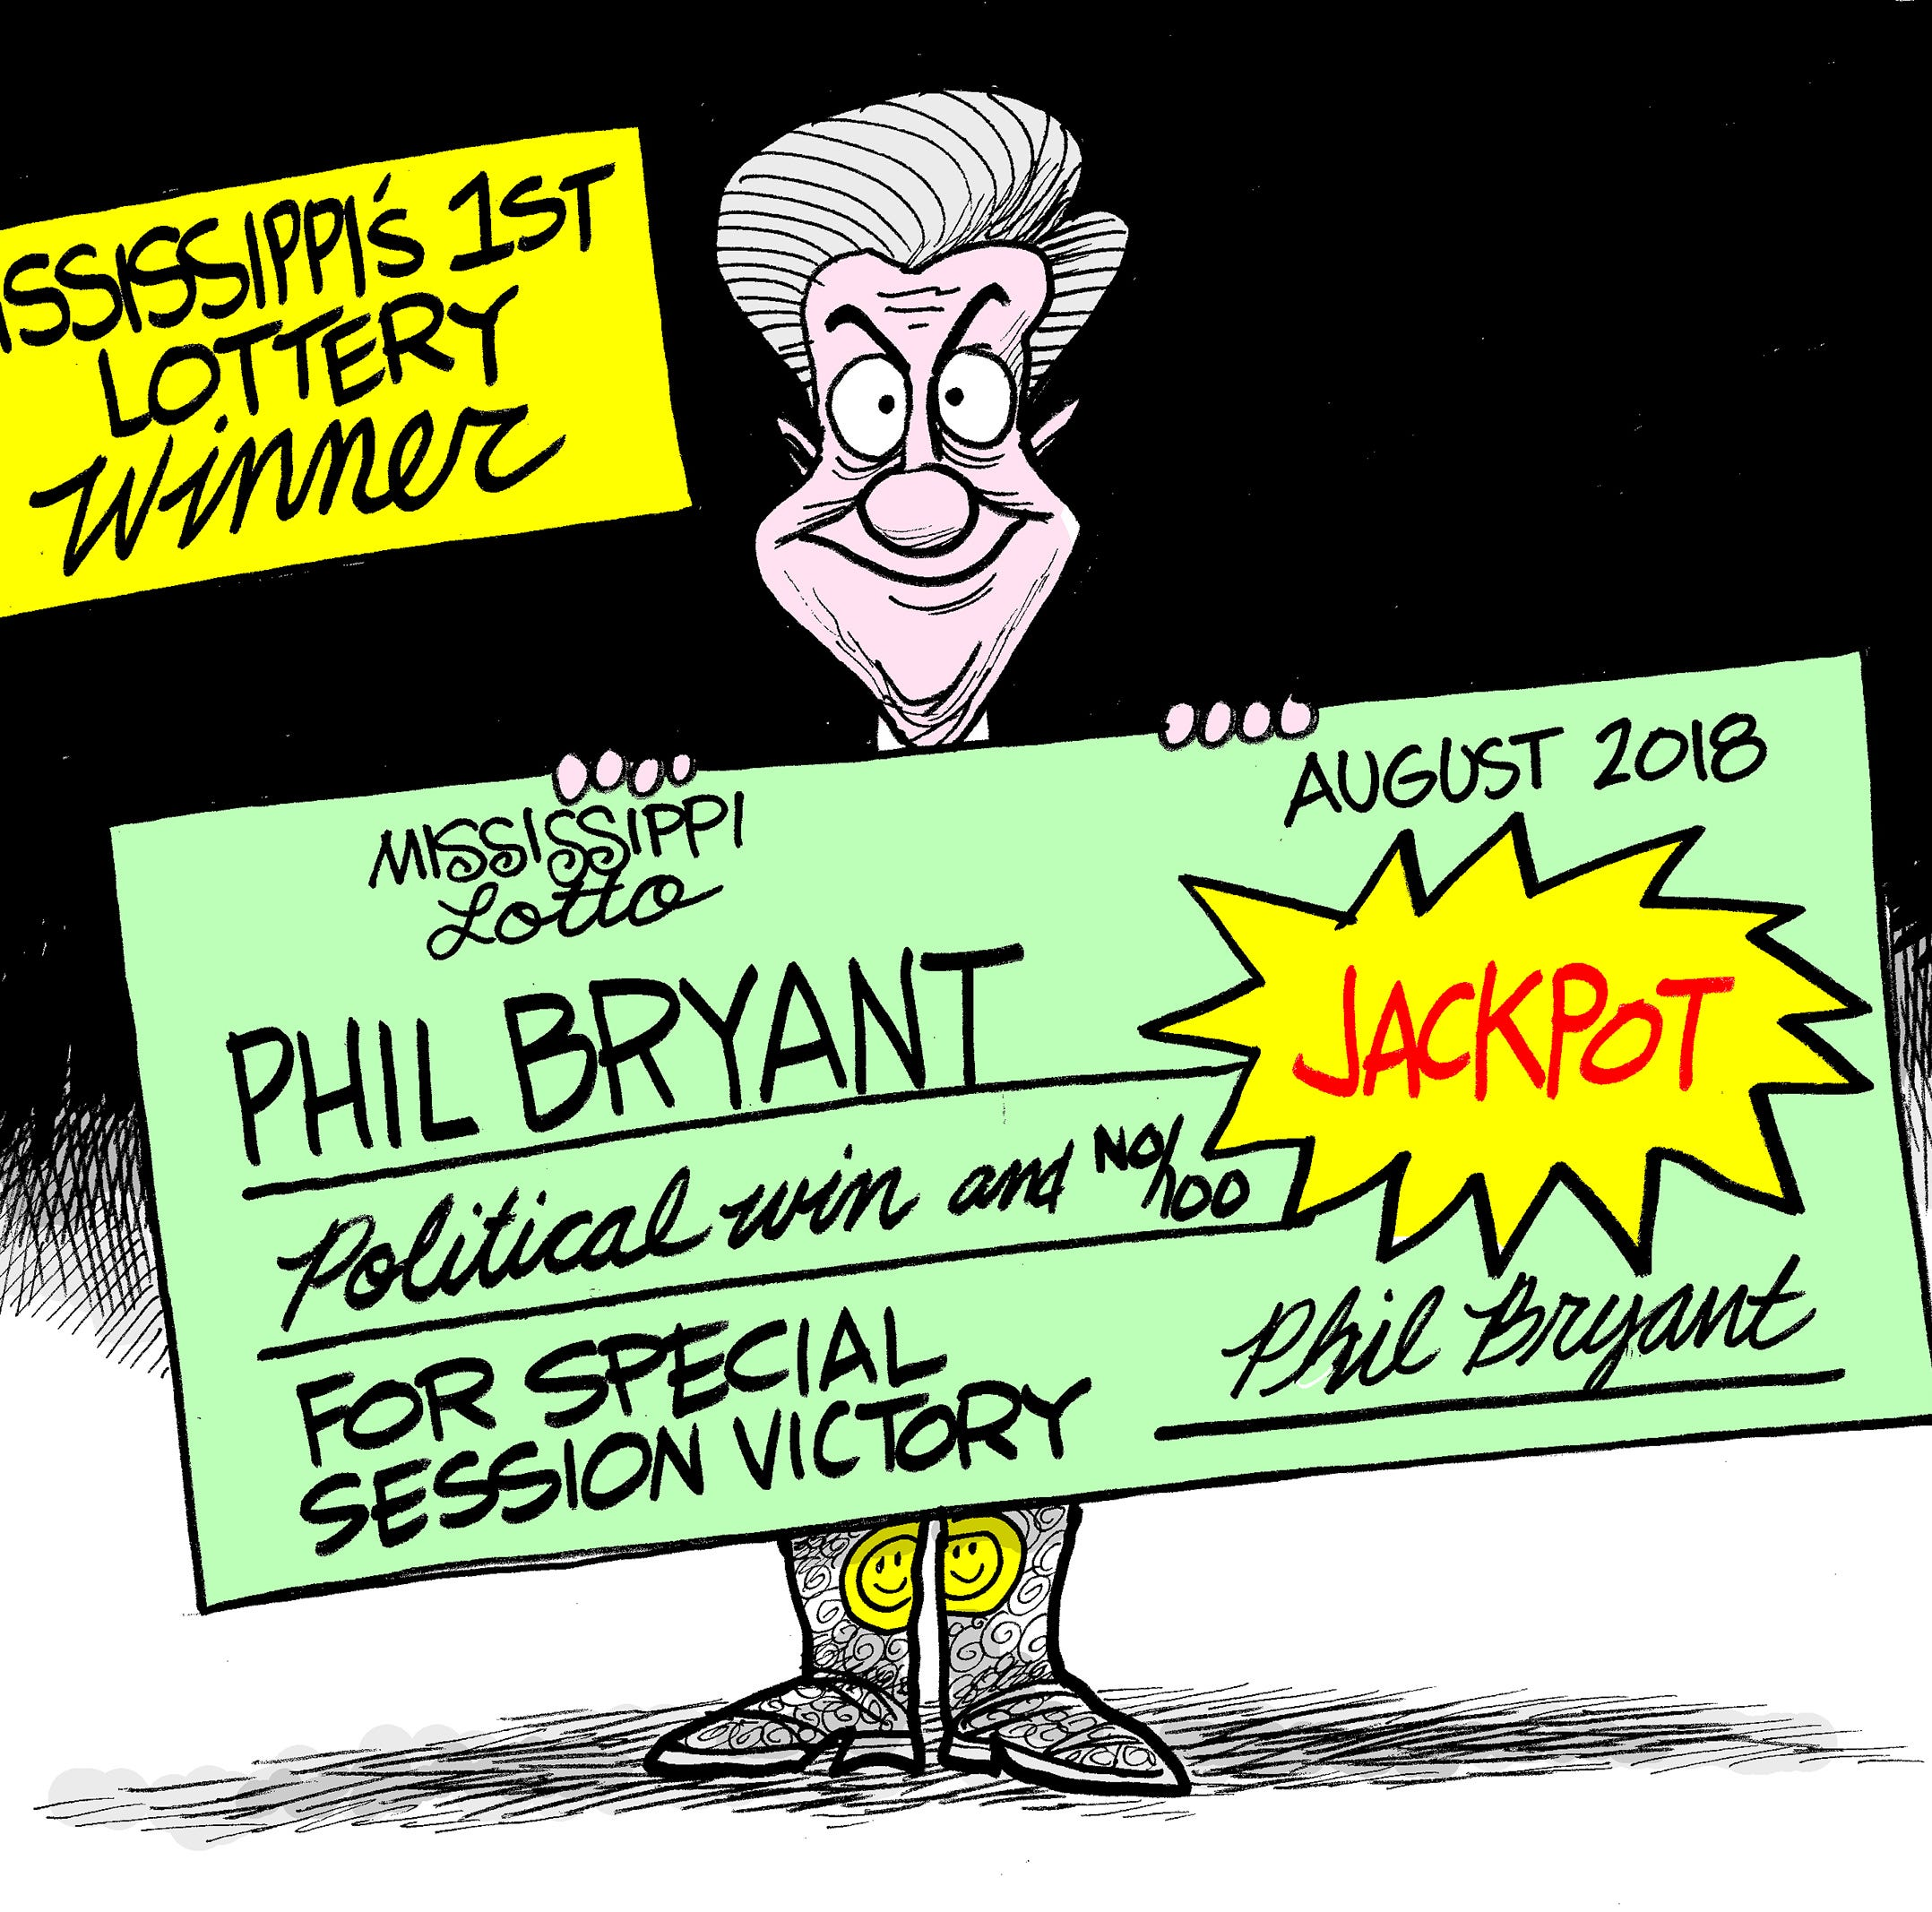 Mississippi's new lottery will help save the state budget